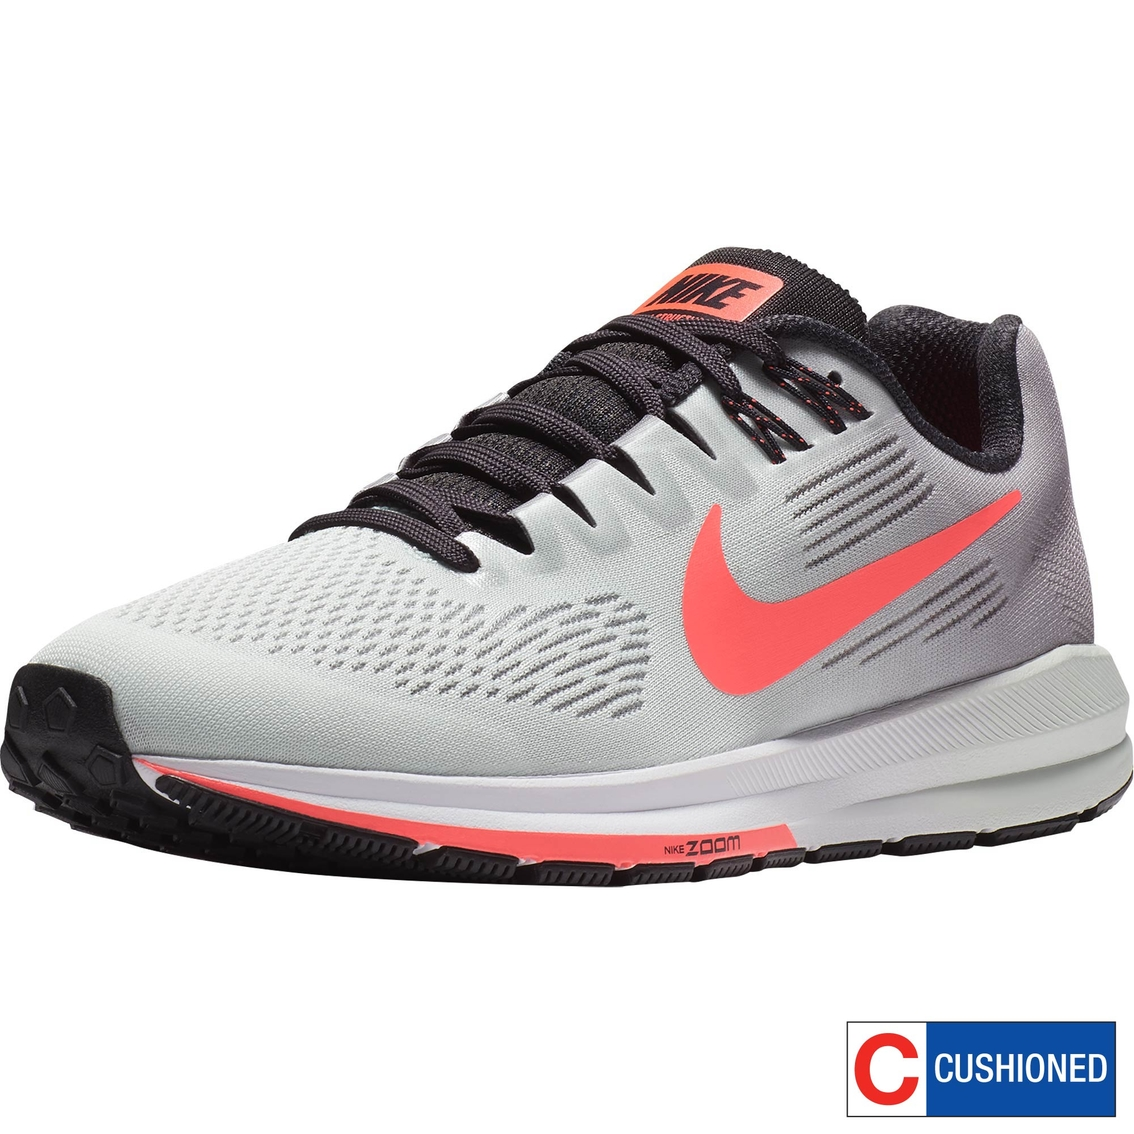 7b11db42d575 Nike Women s Air Zoom Structure 21 Running Shoes